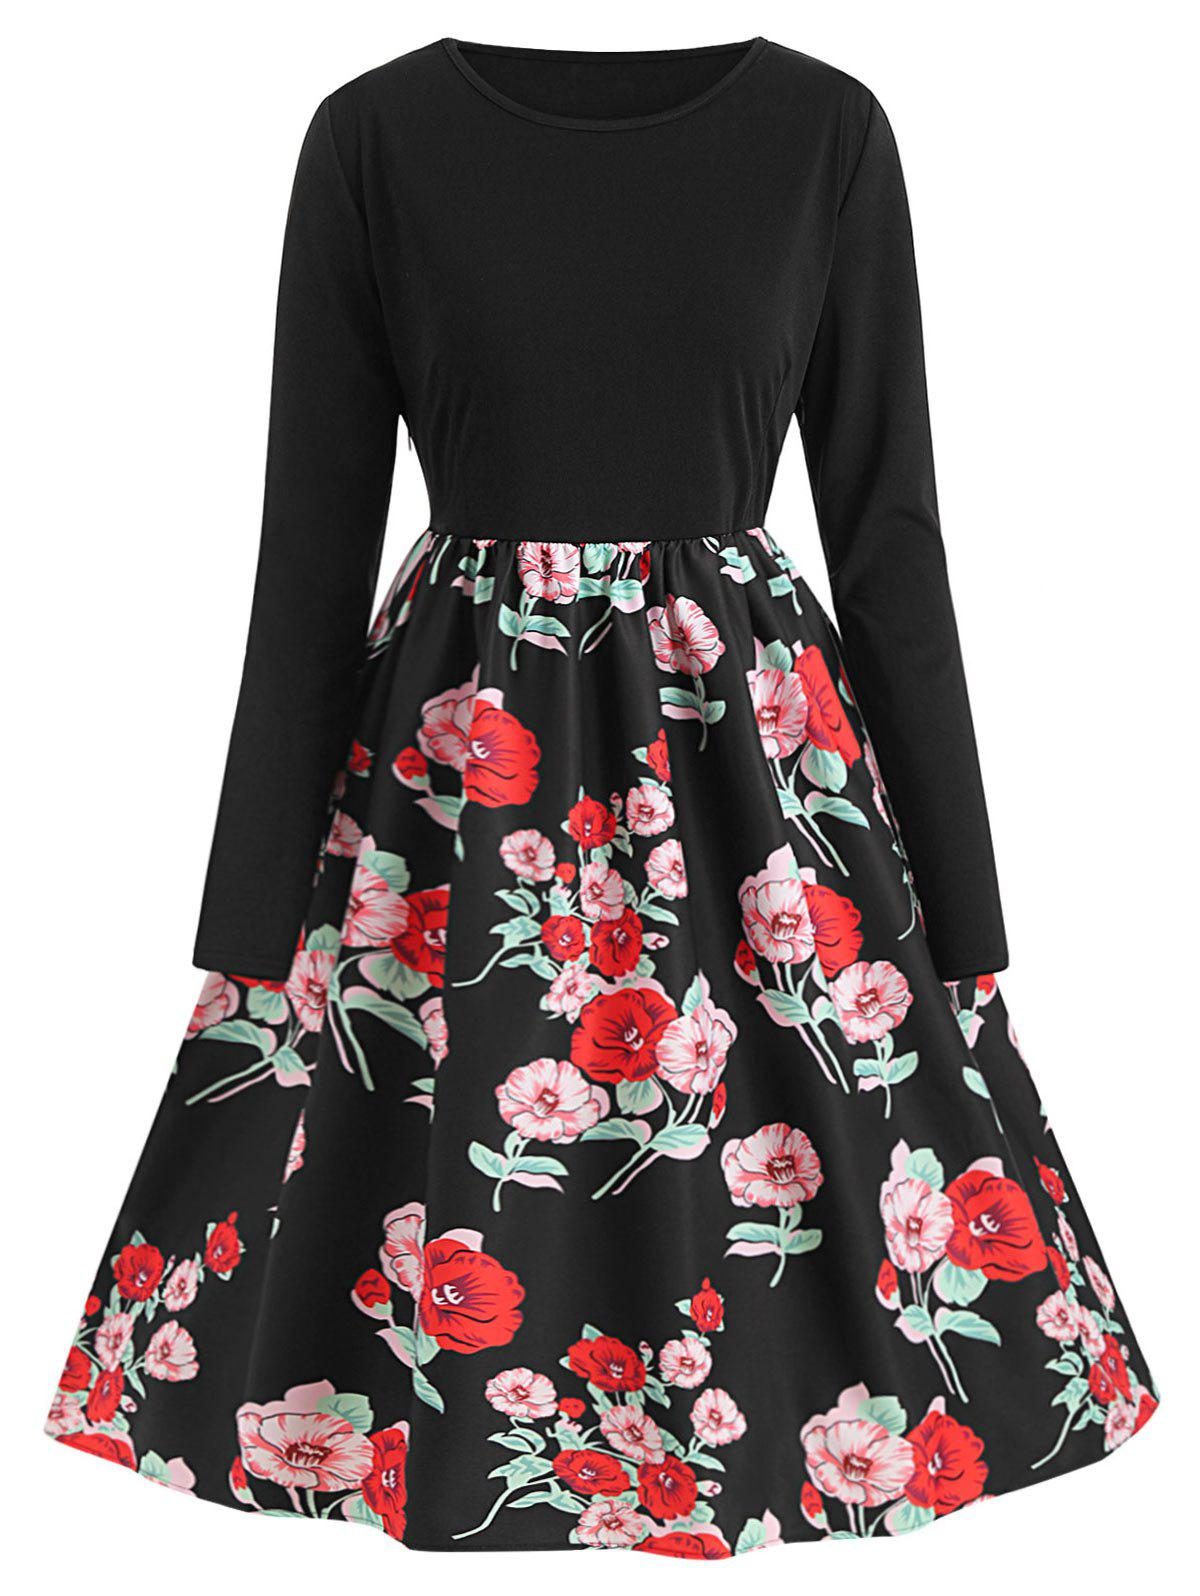 Trendy Plus Size Vintage Floral Print Fit and Flare Dress